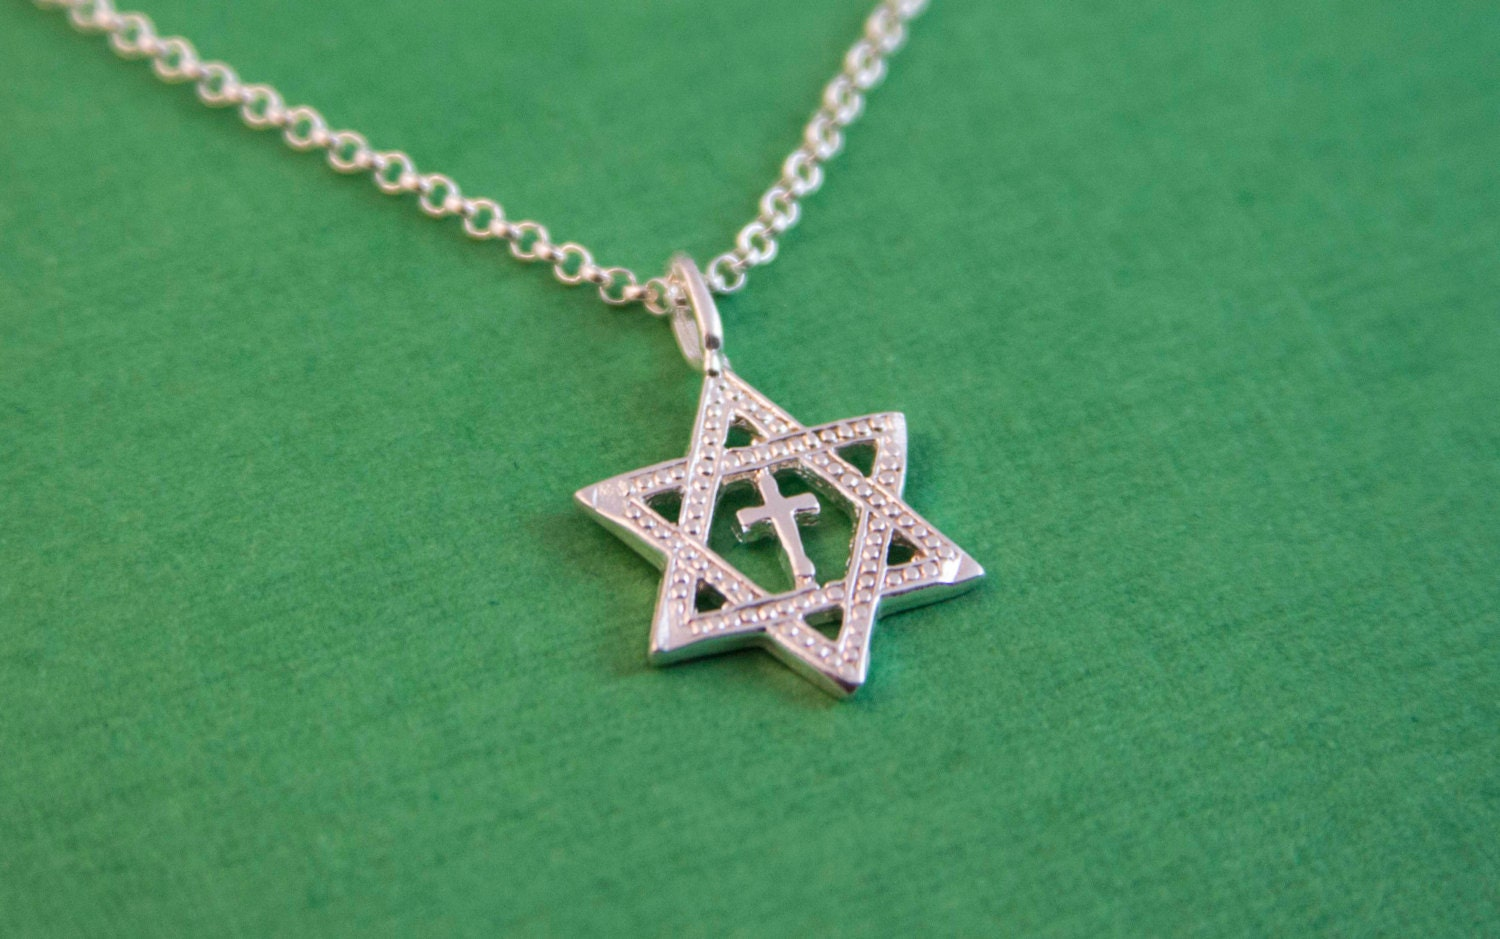 Cross In Magen David Necklace  Silver Star Of David Necklace. Band Rings. Intaglio Pendant. Arrowhead Pendant. Bracelet Necklace. Special Rings. Big Date Watches. Shared Prong Eternity Band. Classic Men Watches